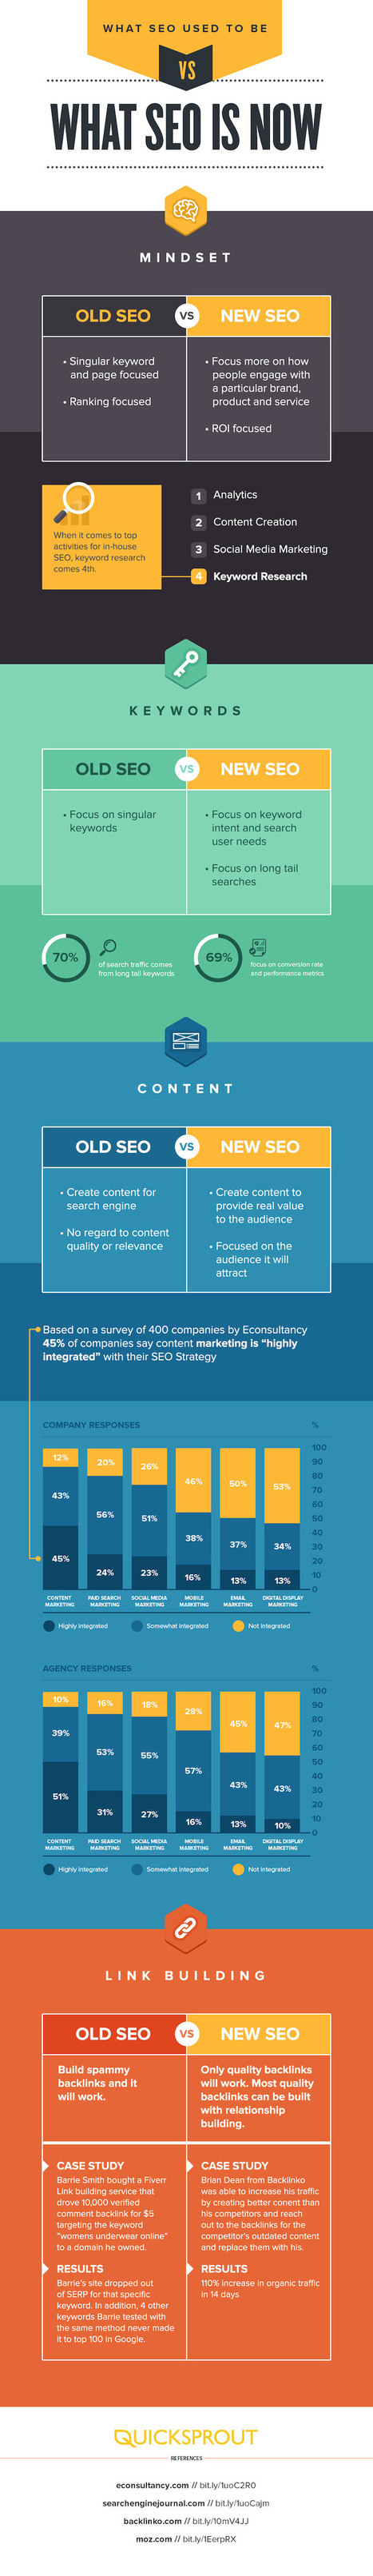 Old SEO vs New SEO: The New Way Must Replace the Old Way | SEO and Social Media Marketing | Scoop.it